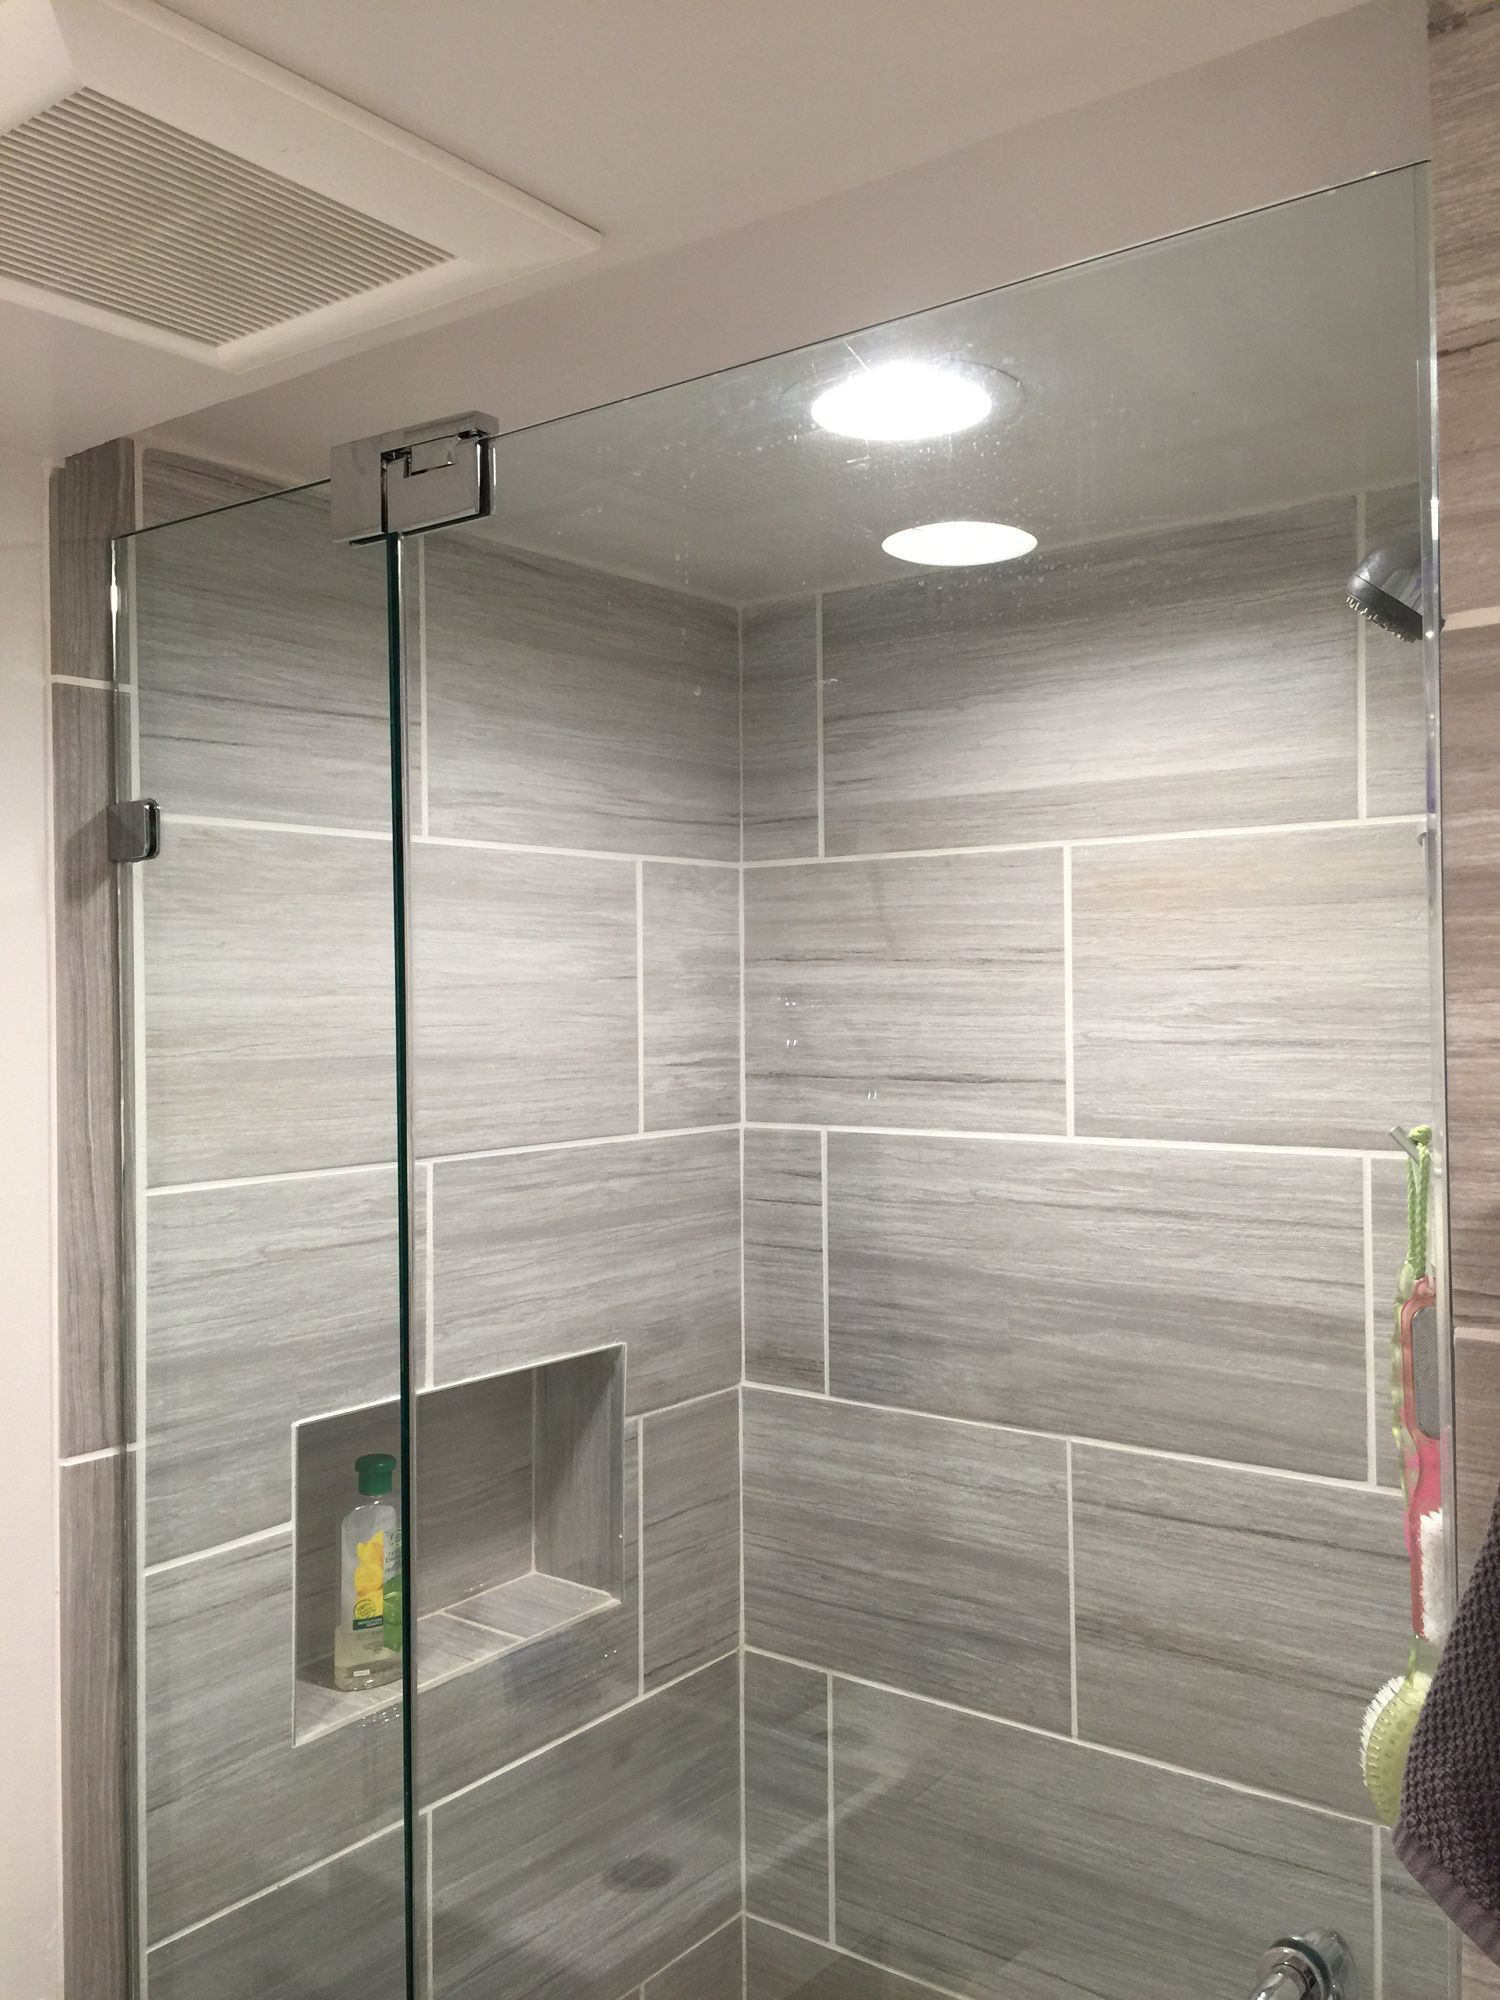 45 Best Creative Shower Doors Design Ideas For Bathroom Frameless Shower Doors Glass Shower Enclosures Small Bathroom With Shower